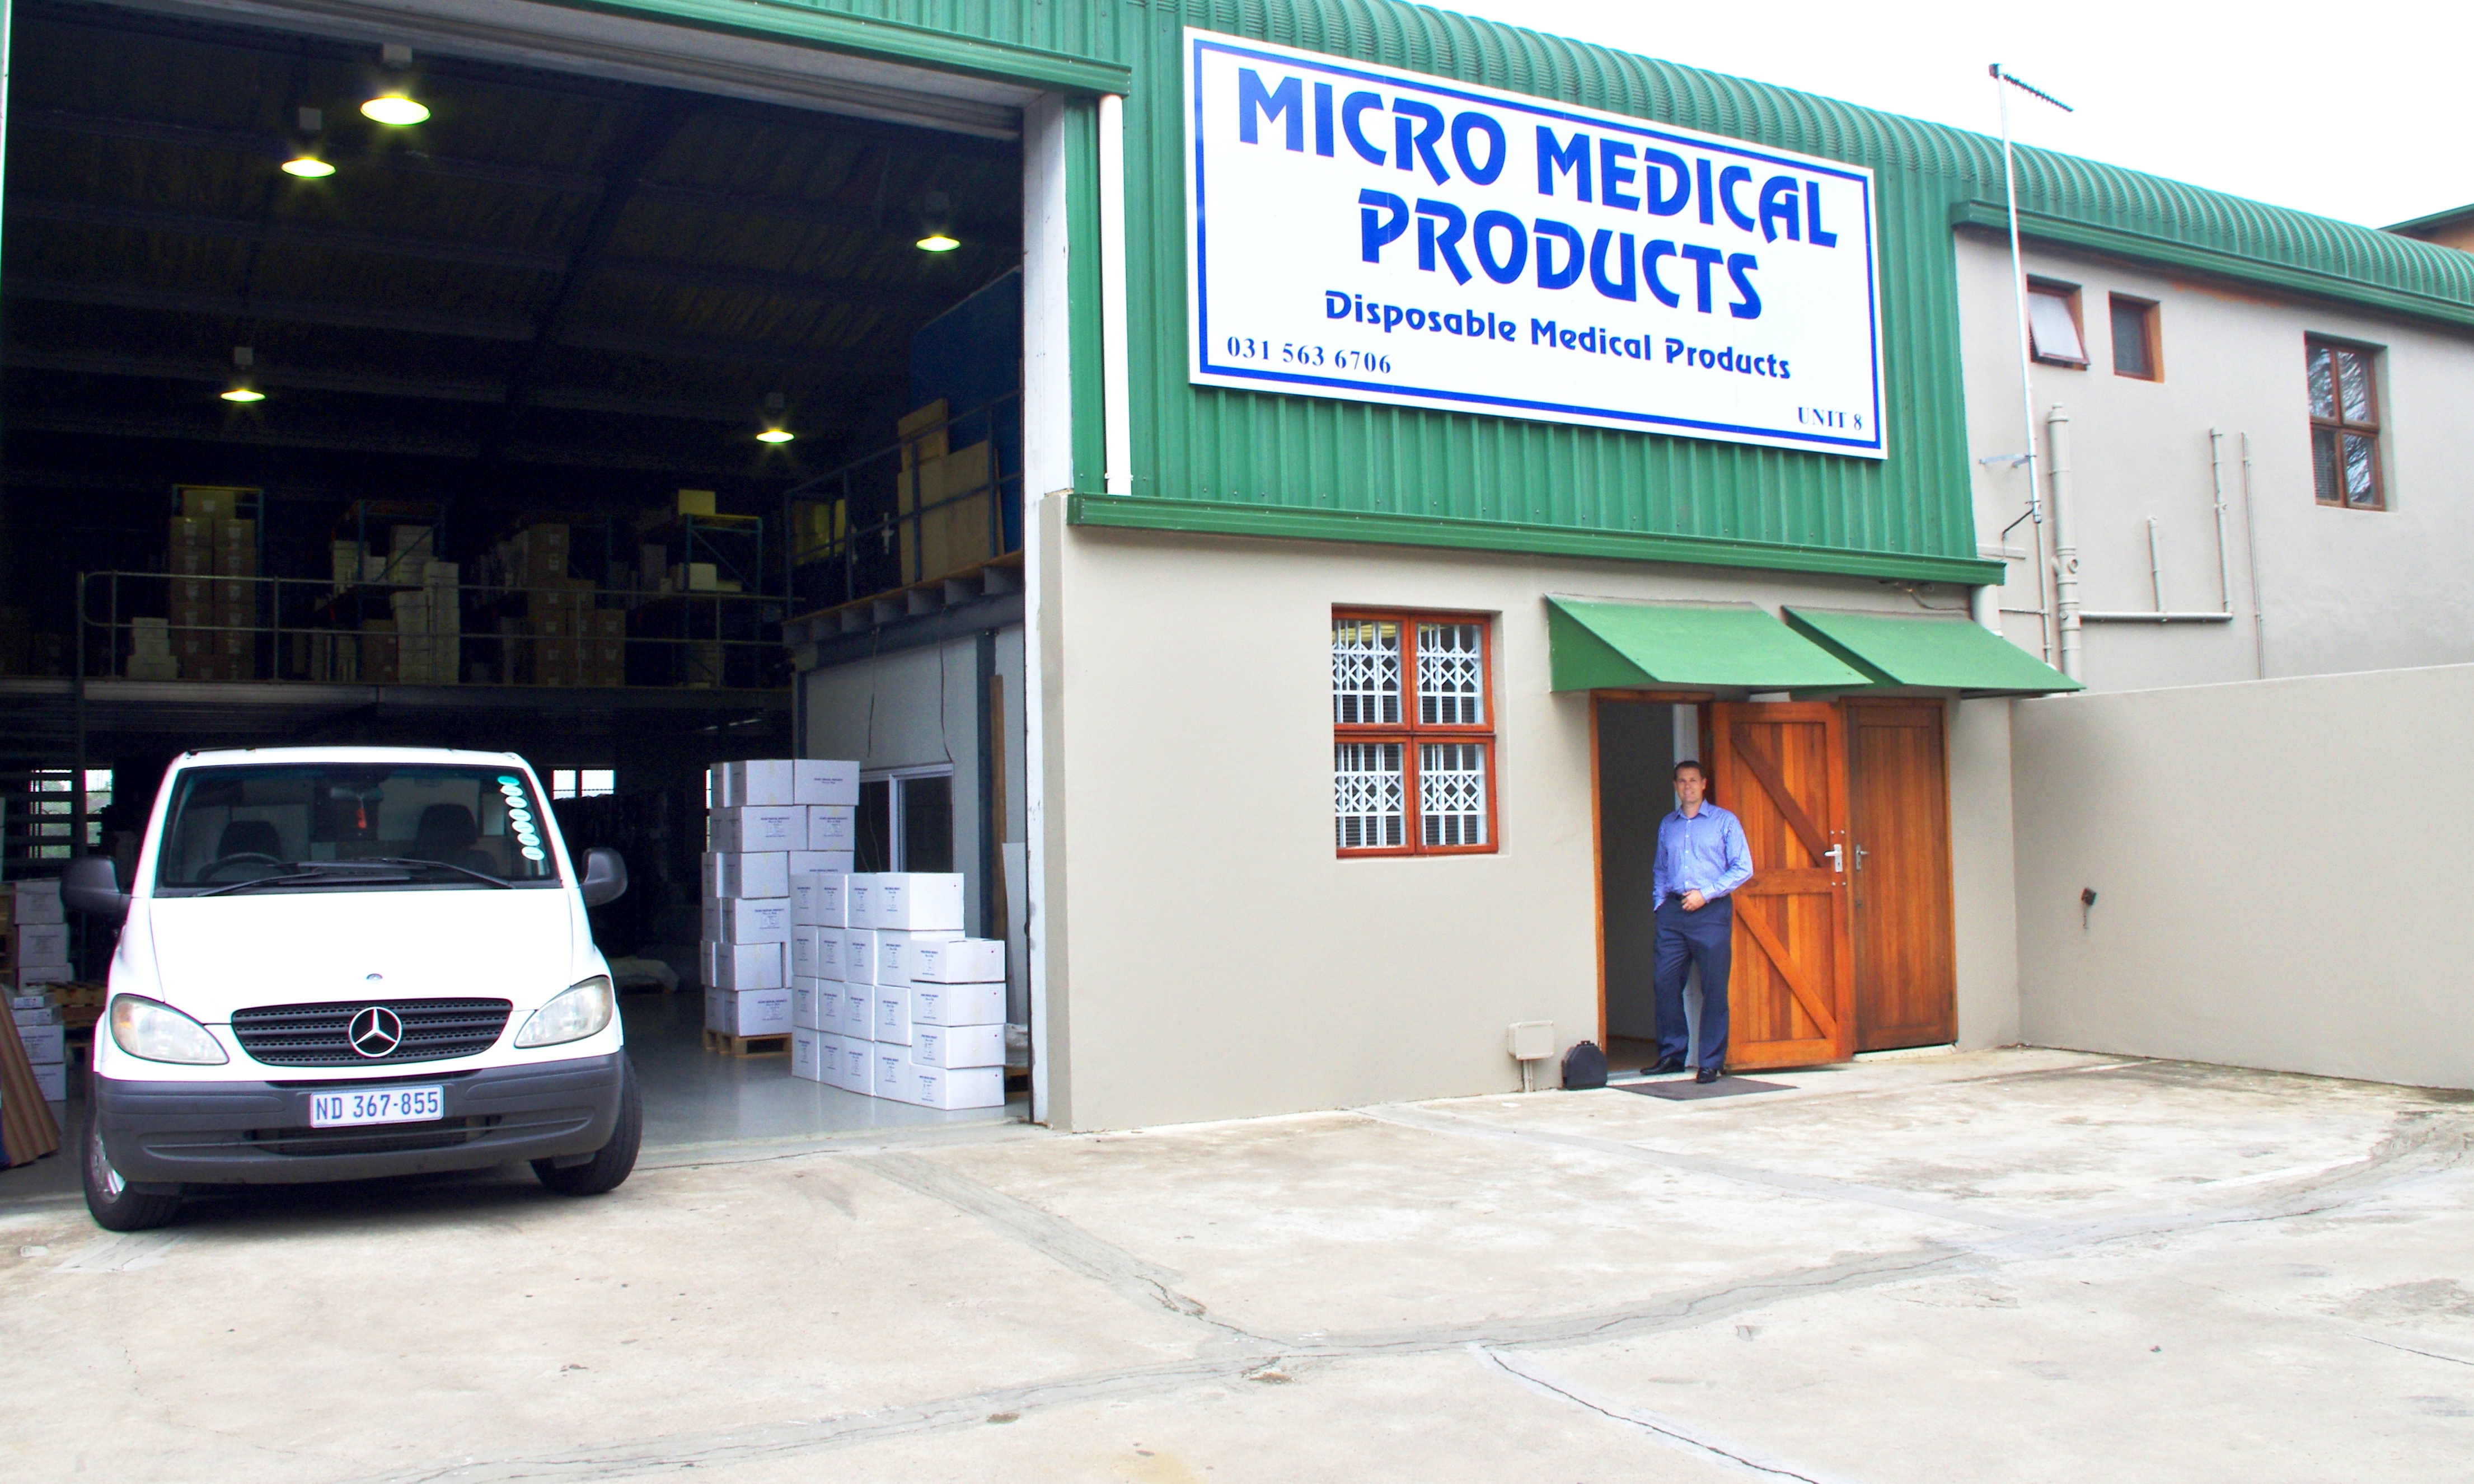 LOCALLY PRODUCED PRODUCTS